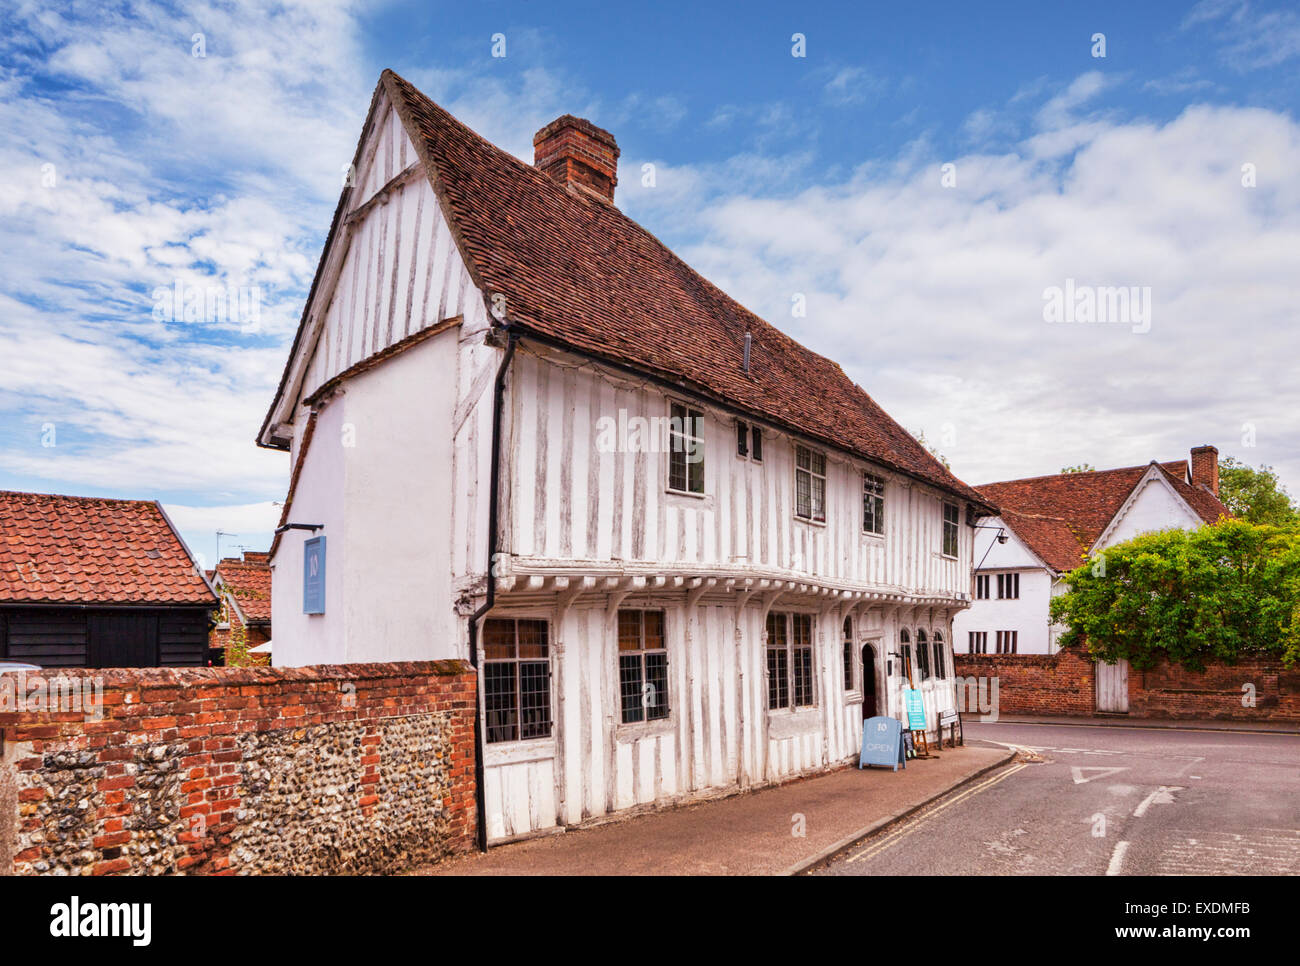 A Grade 1 listed building, Tudor shops in Lavenham, England's best preserved medieval village, Suffolk, England. - Stock Image